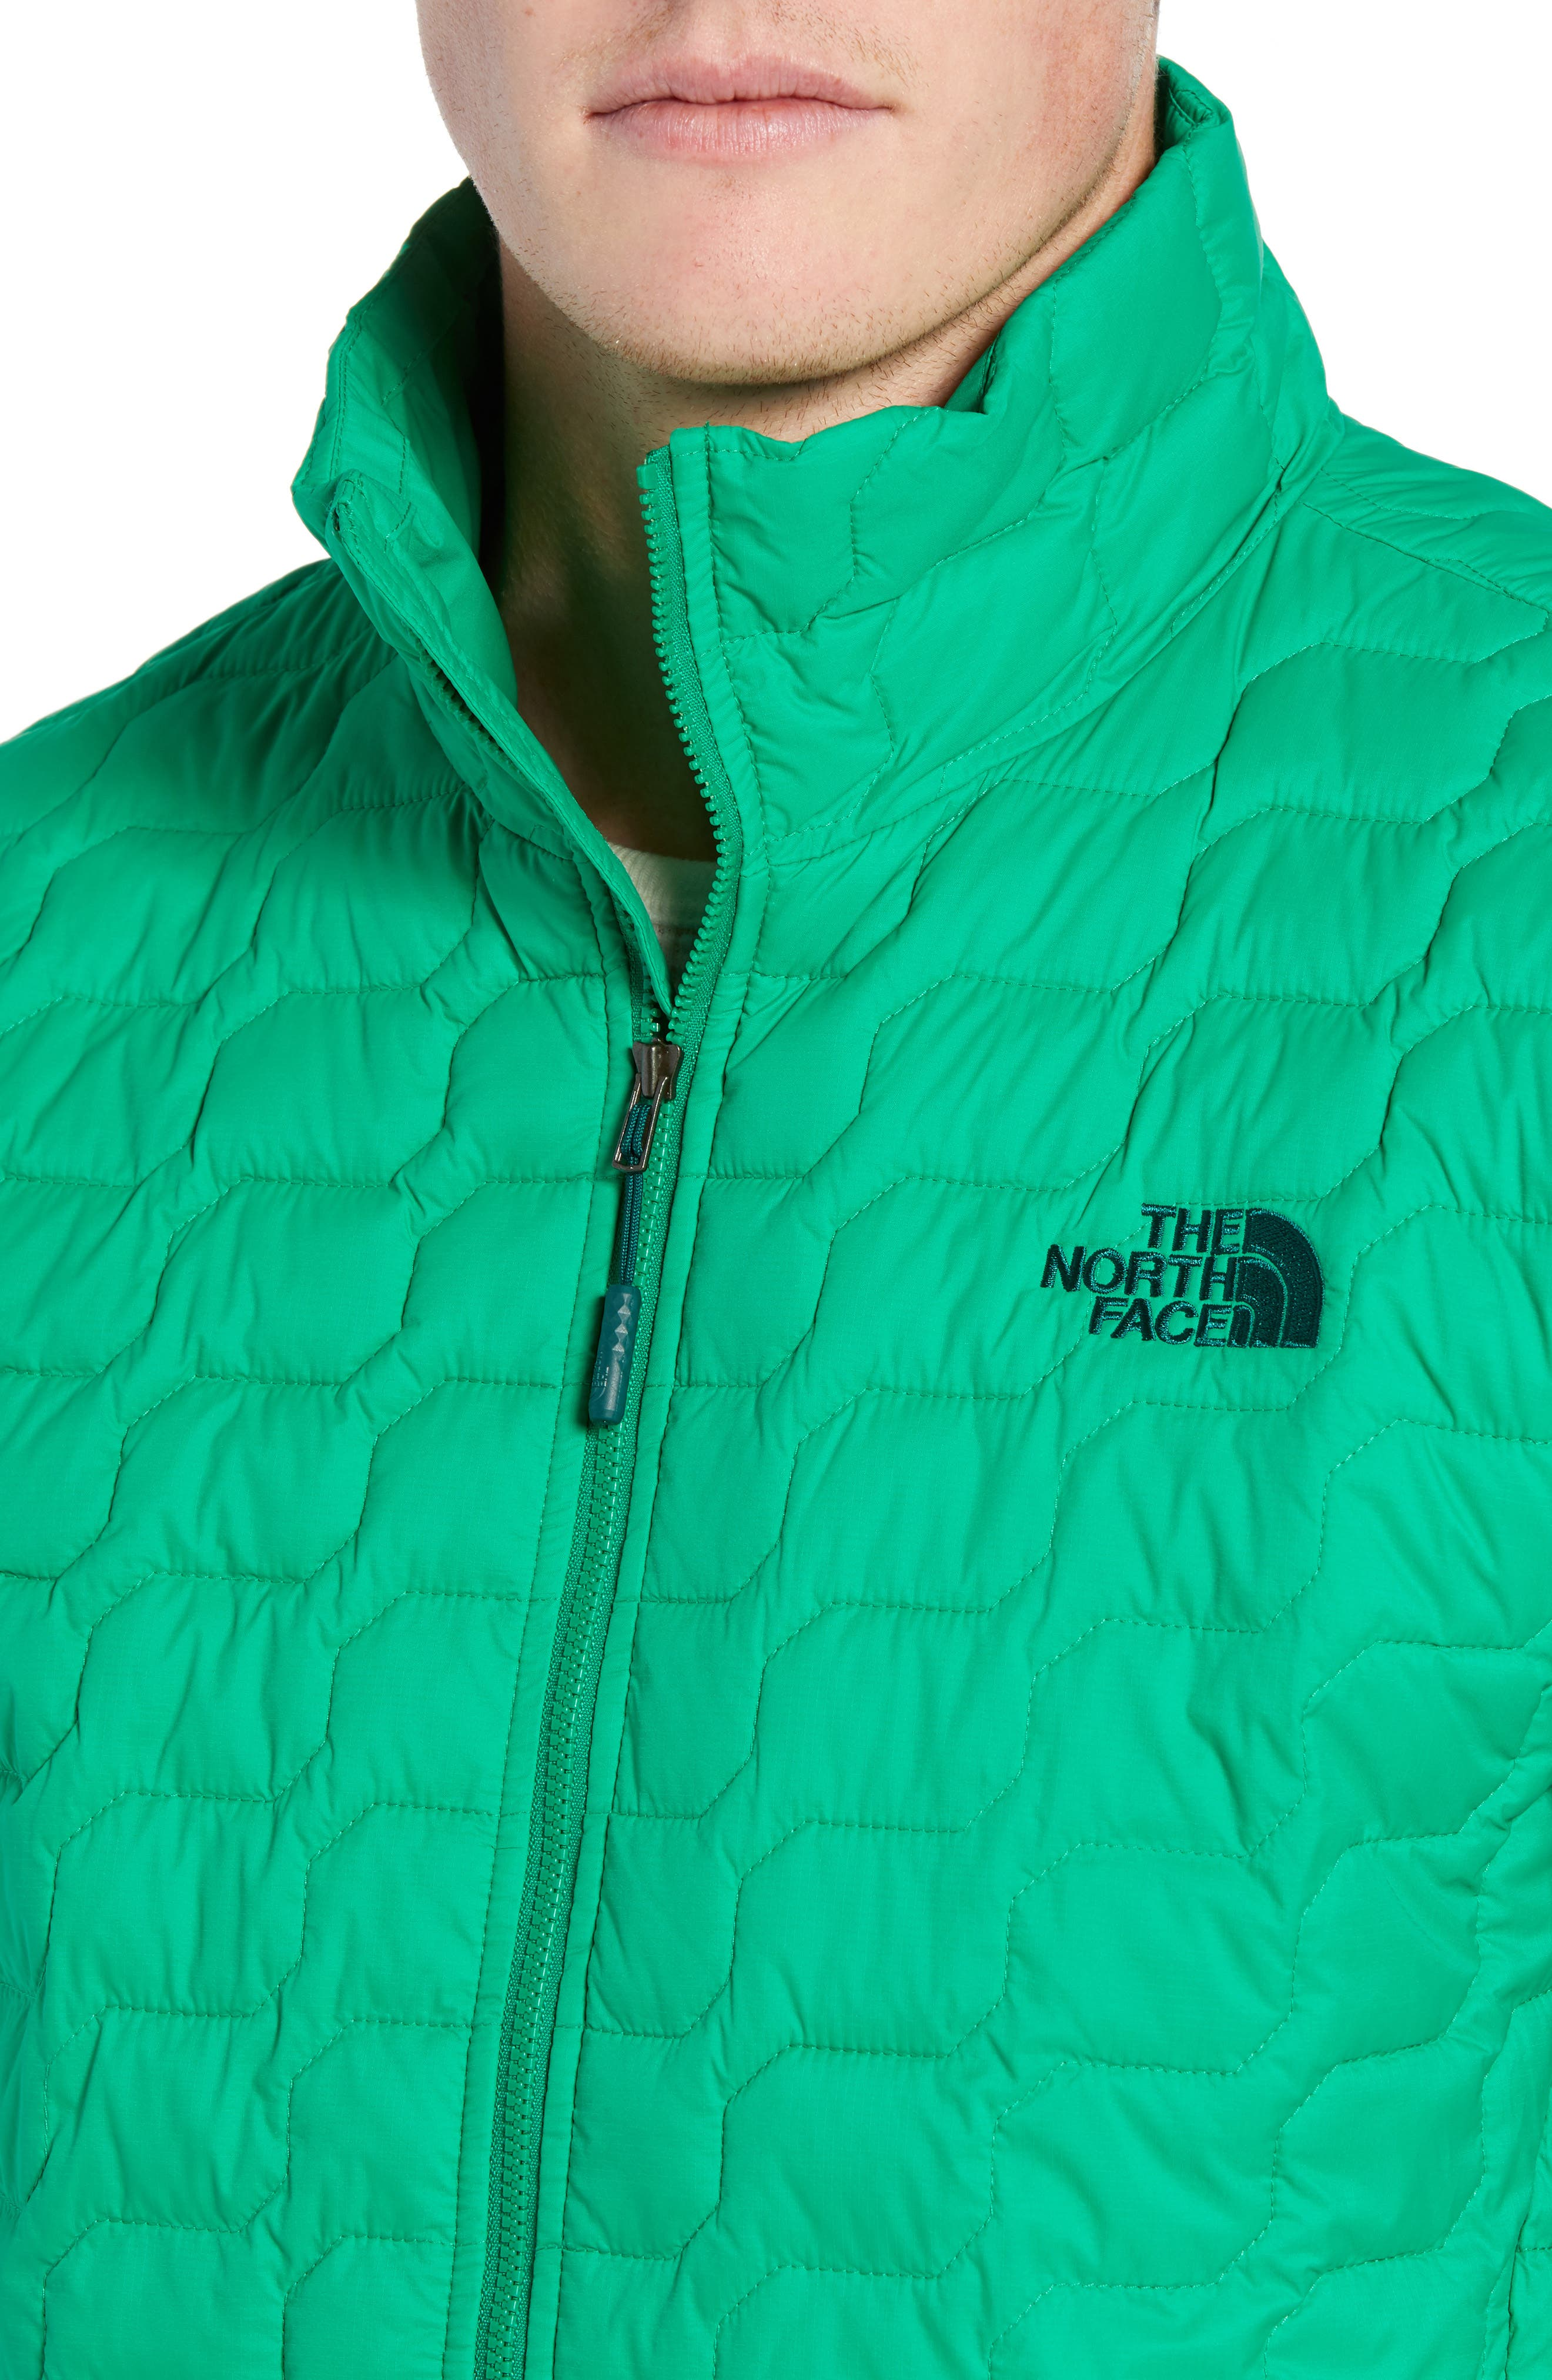 THE NORTH FACE,                             ThermoBall<sup>™</sup> Jacket,                             Alternate thumbnail 4, color,                             PRIMARY GREEN MATTE